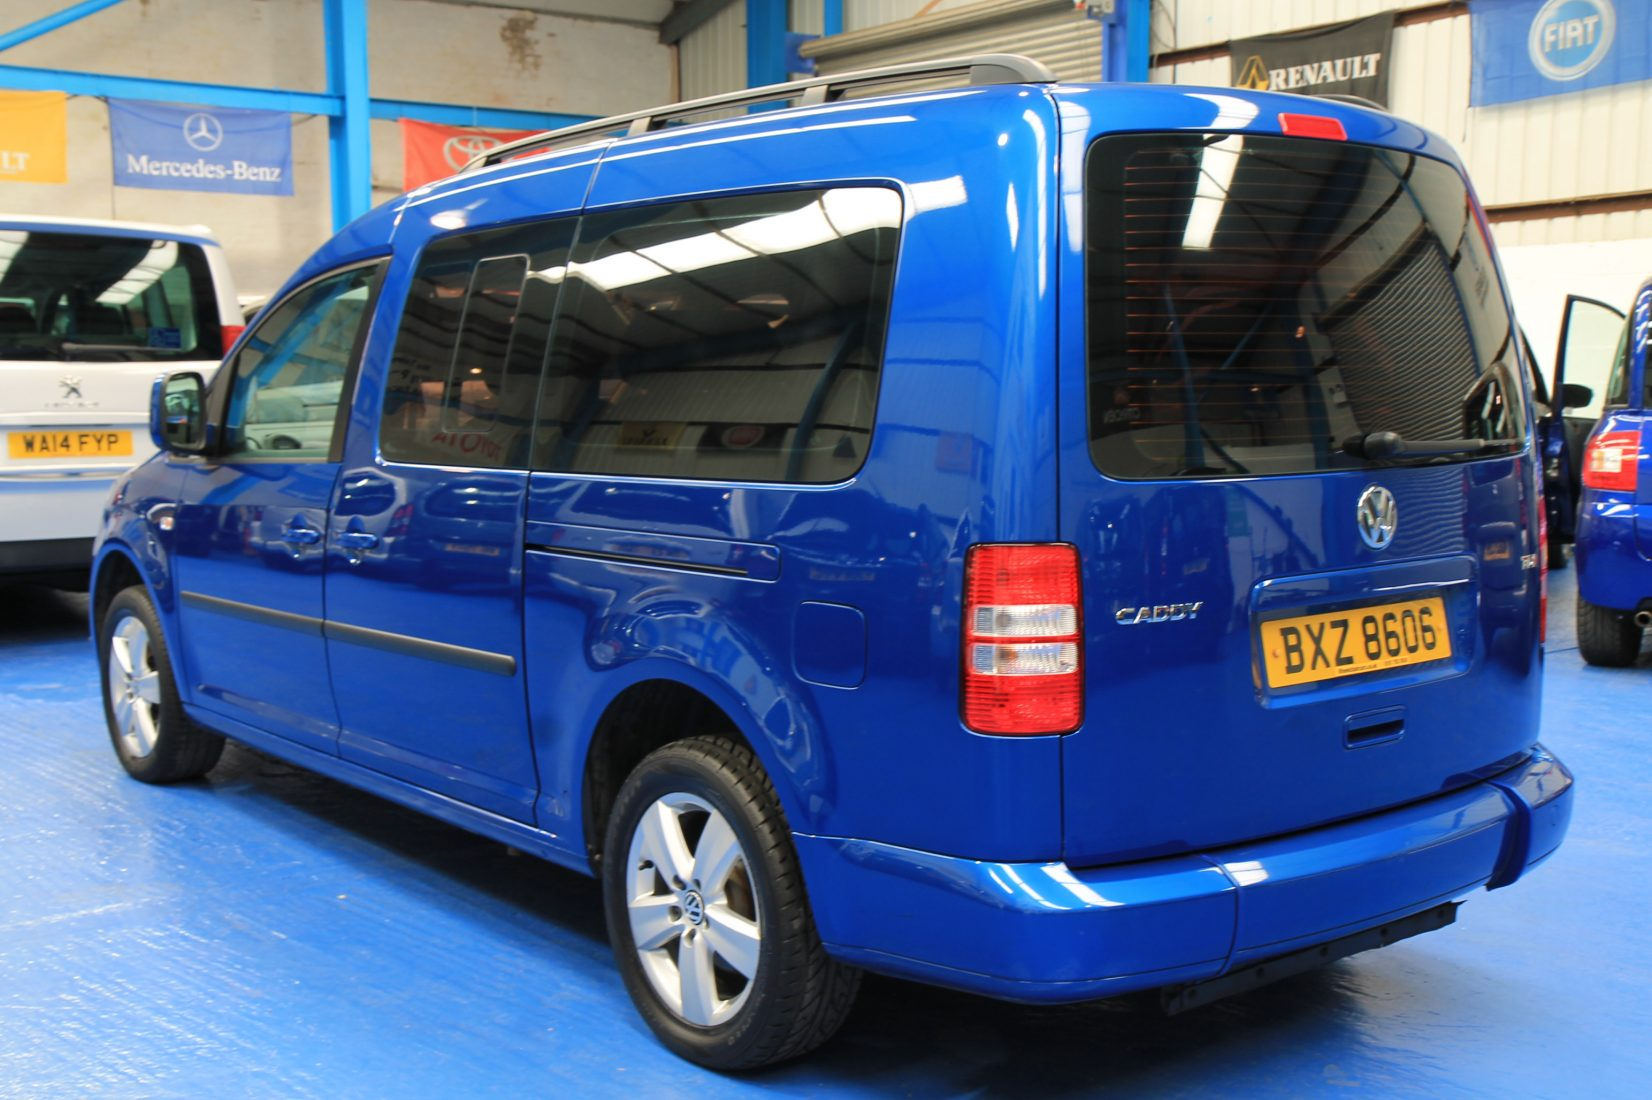 Wheelchair Accessible Vehicles: Caddy Wheelchair Accessible Vehicle Bxz86